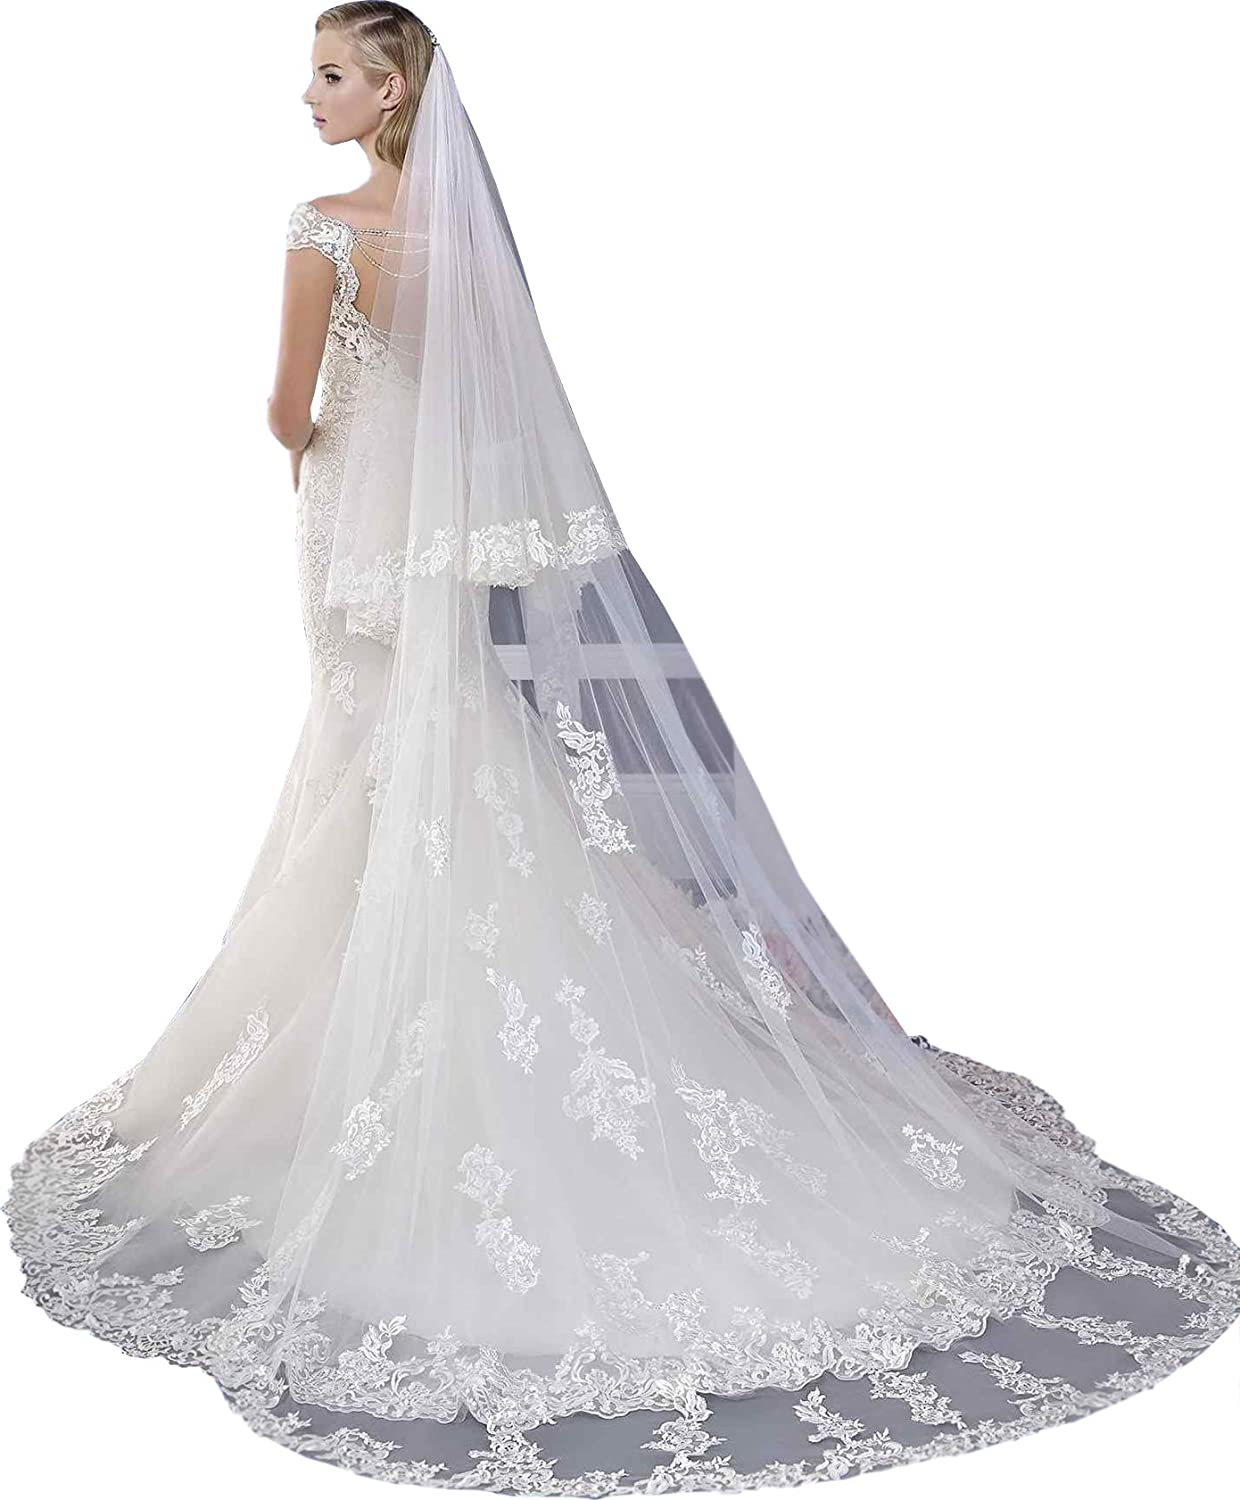 Newdeve 3M 2T White Bridal Veils Lace Edge Meter Long Free Comb